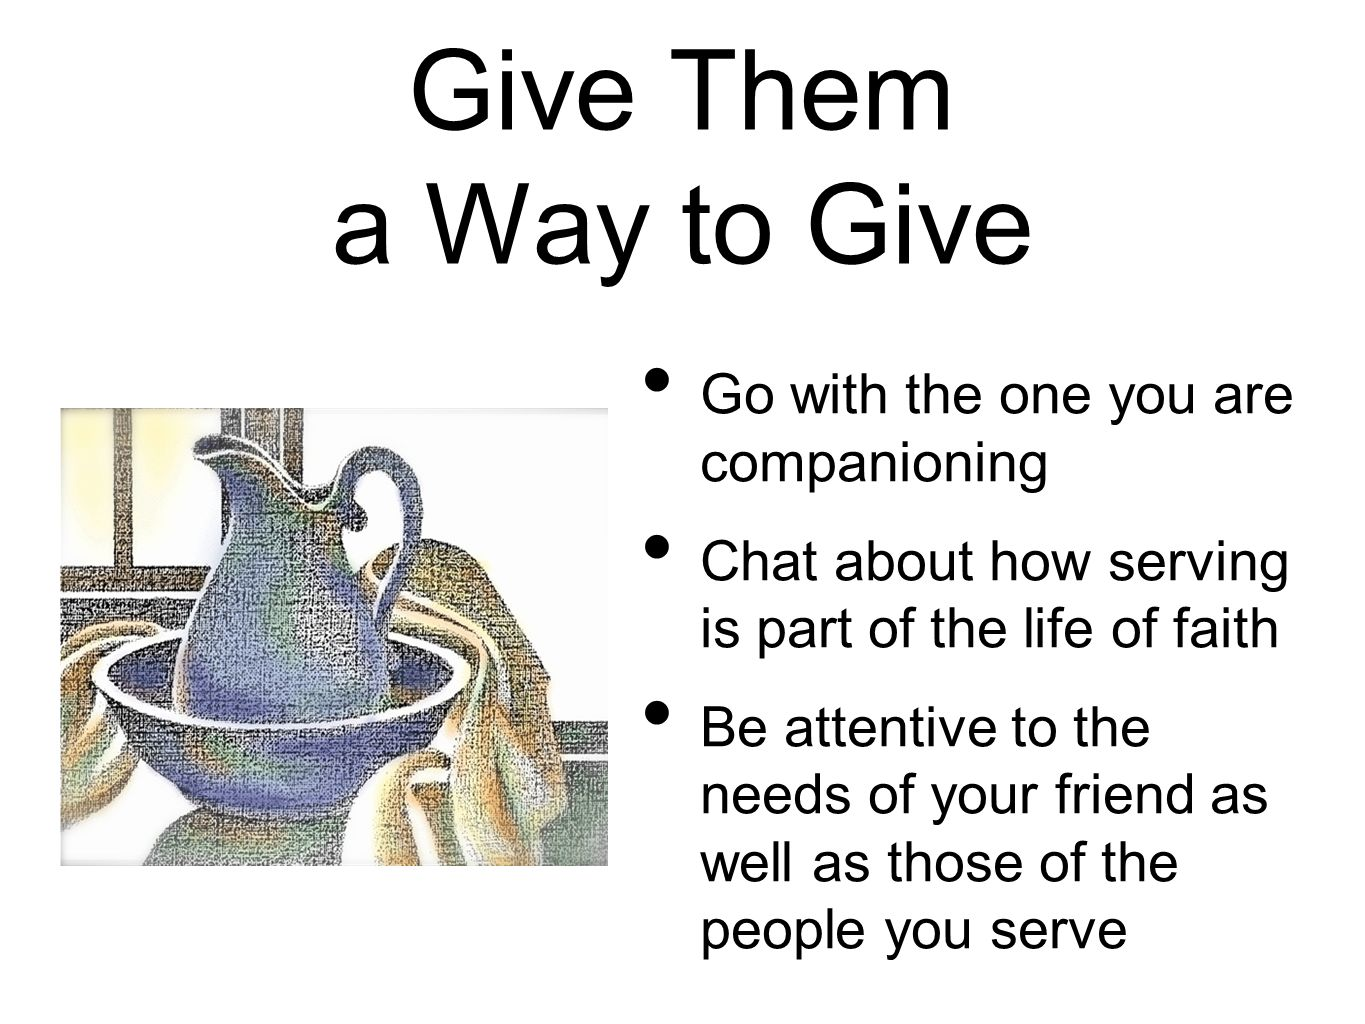 Give Them a Way to Give Go with the one you are companioning Chat about how serving is part of the life of faith Be attentive to the needs of your fri